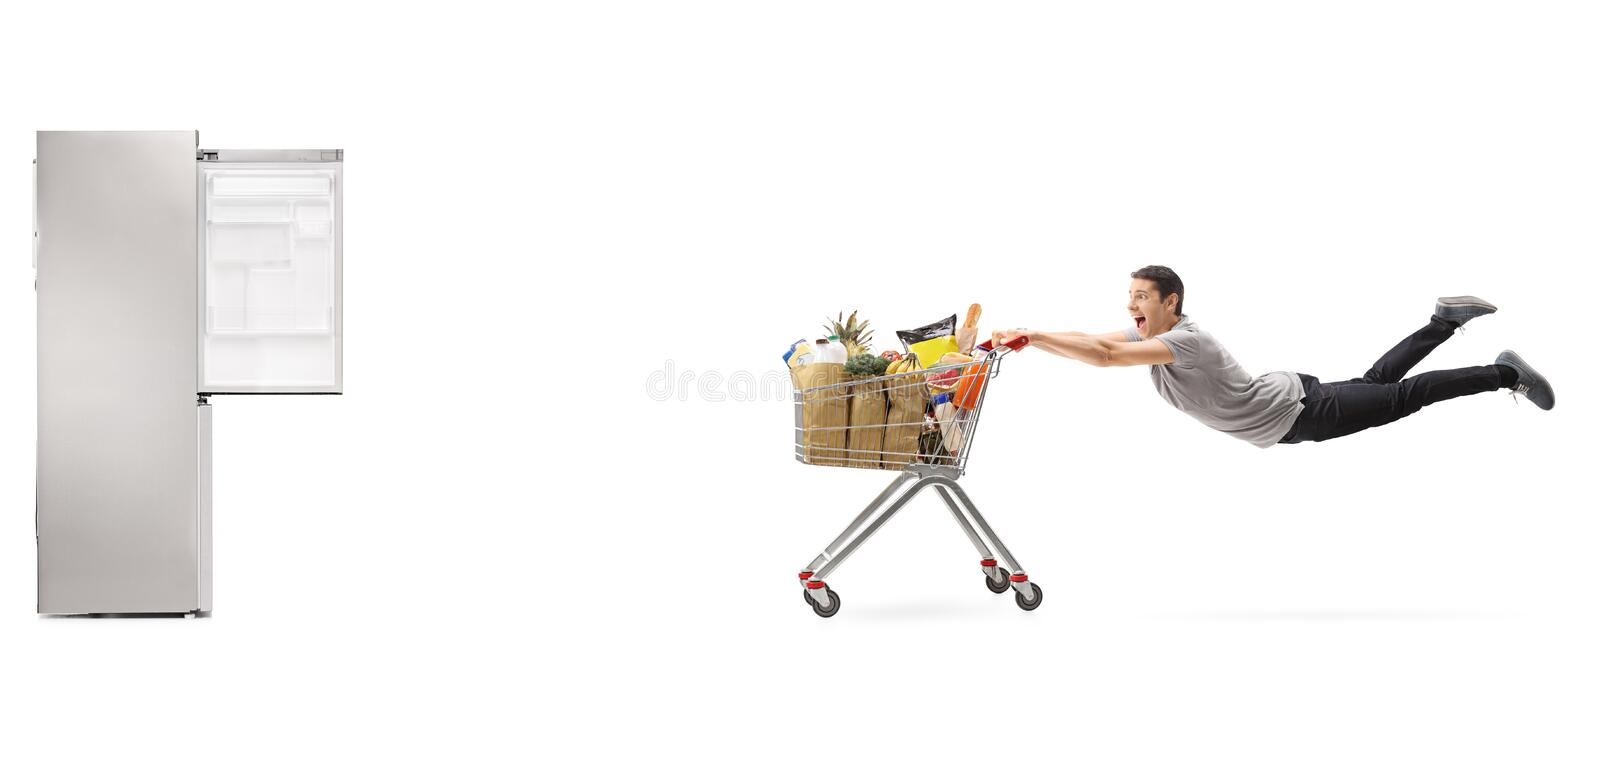 Guy being pulled by shopping cart towards an empty fridge. Guy being pulled by a shopping cart full of groceries towards an empty fridge isolated on white stock photo